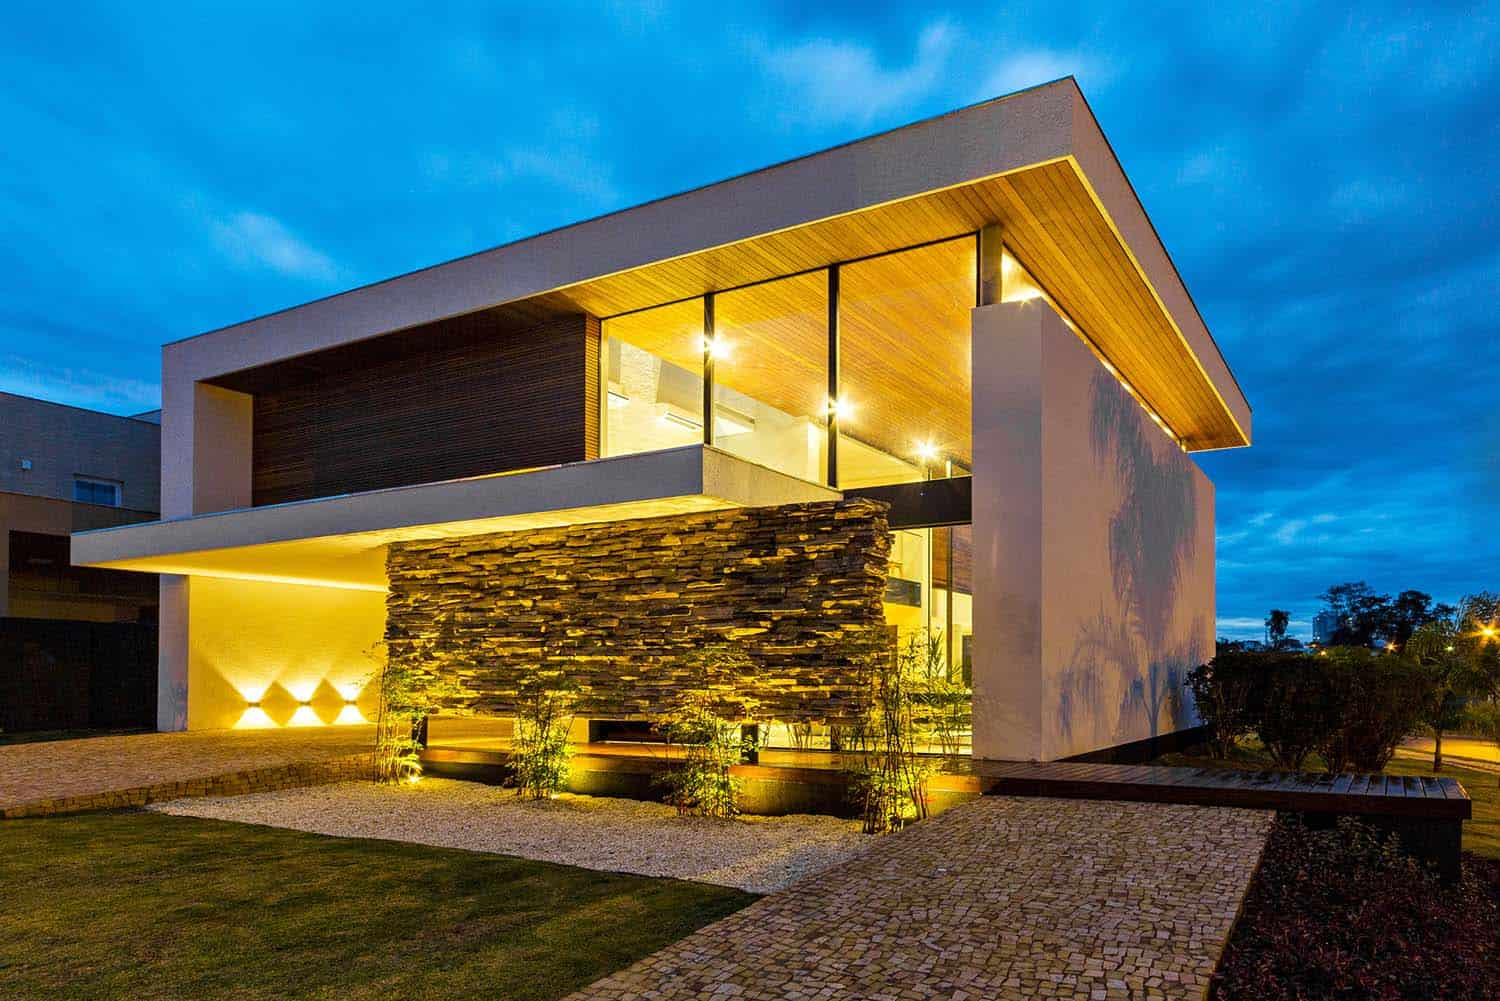 Architecturally Striking Two Story Modern Dwelling In Brazil